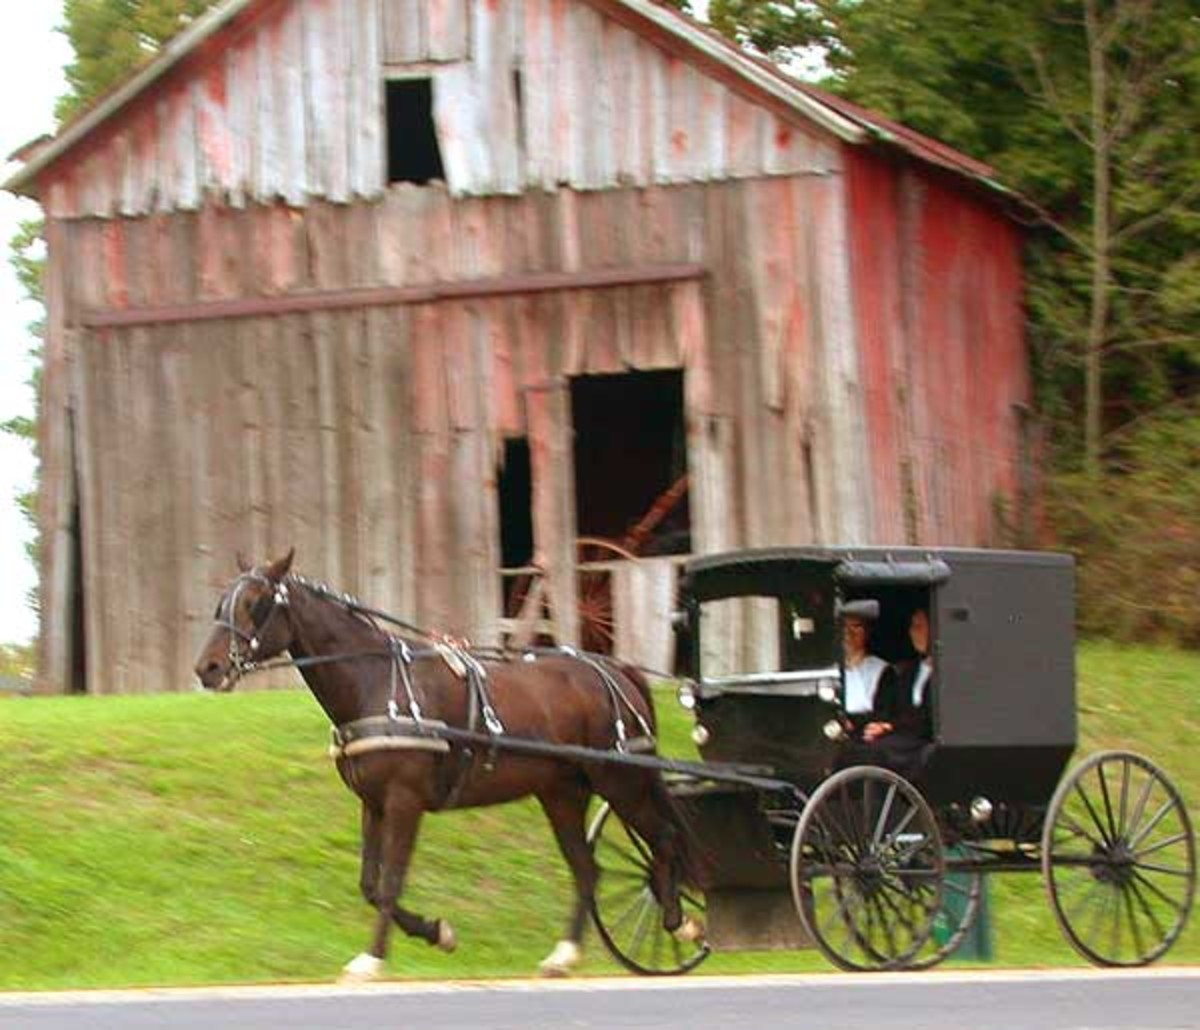 Amish horse and buggy in Holmes County, OH.